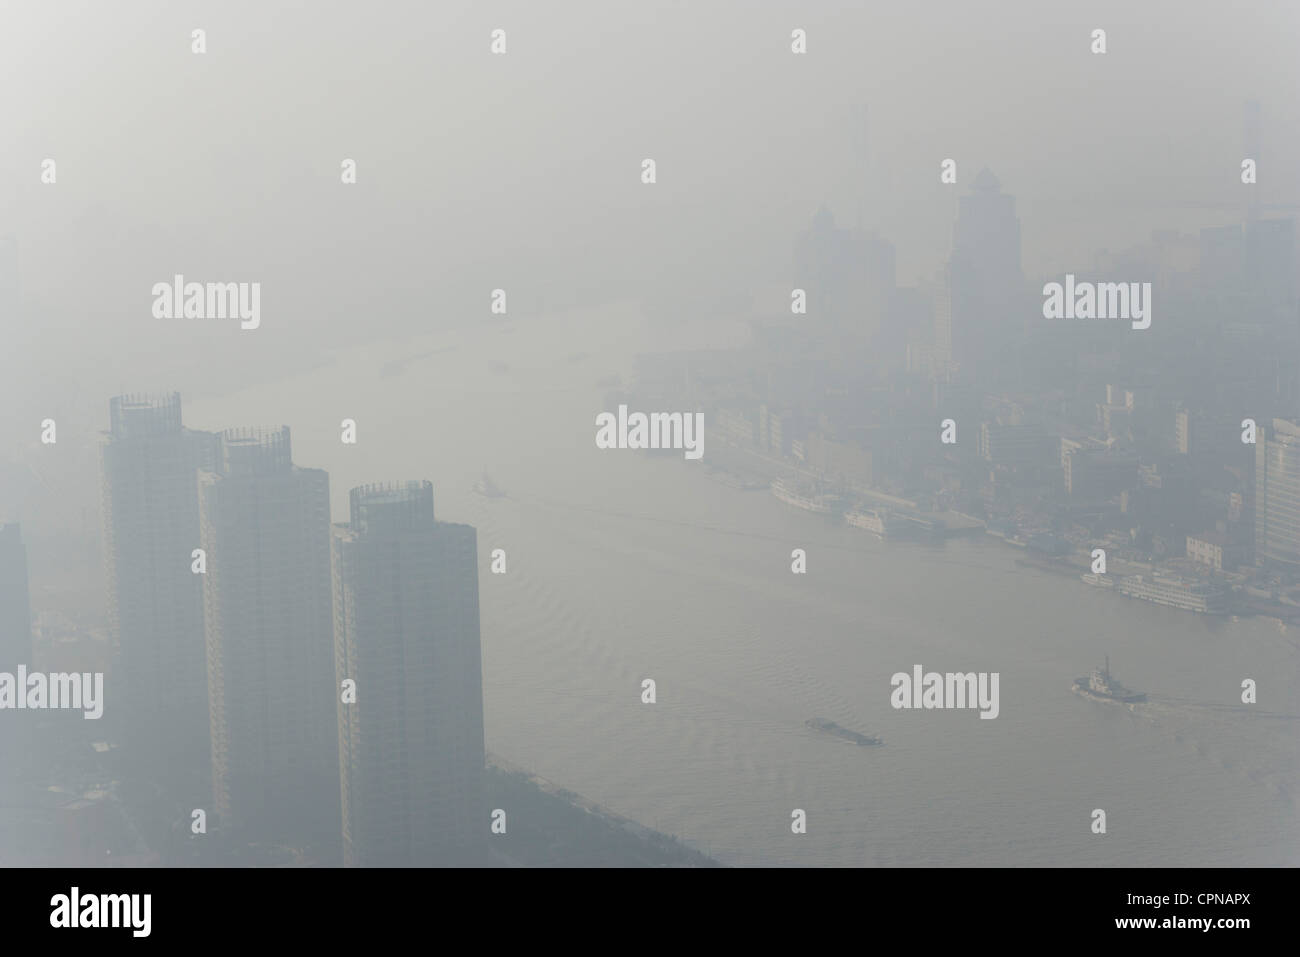 Smoggy aerial view of Shanghai, China Stock Photo